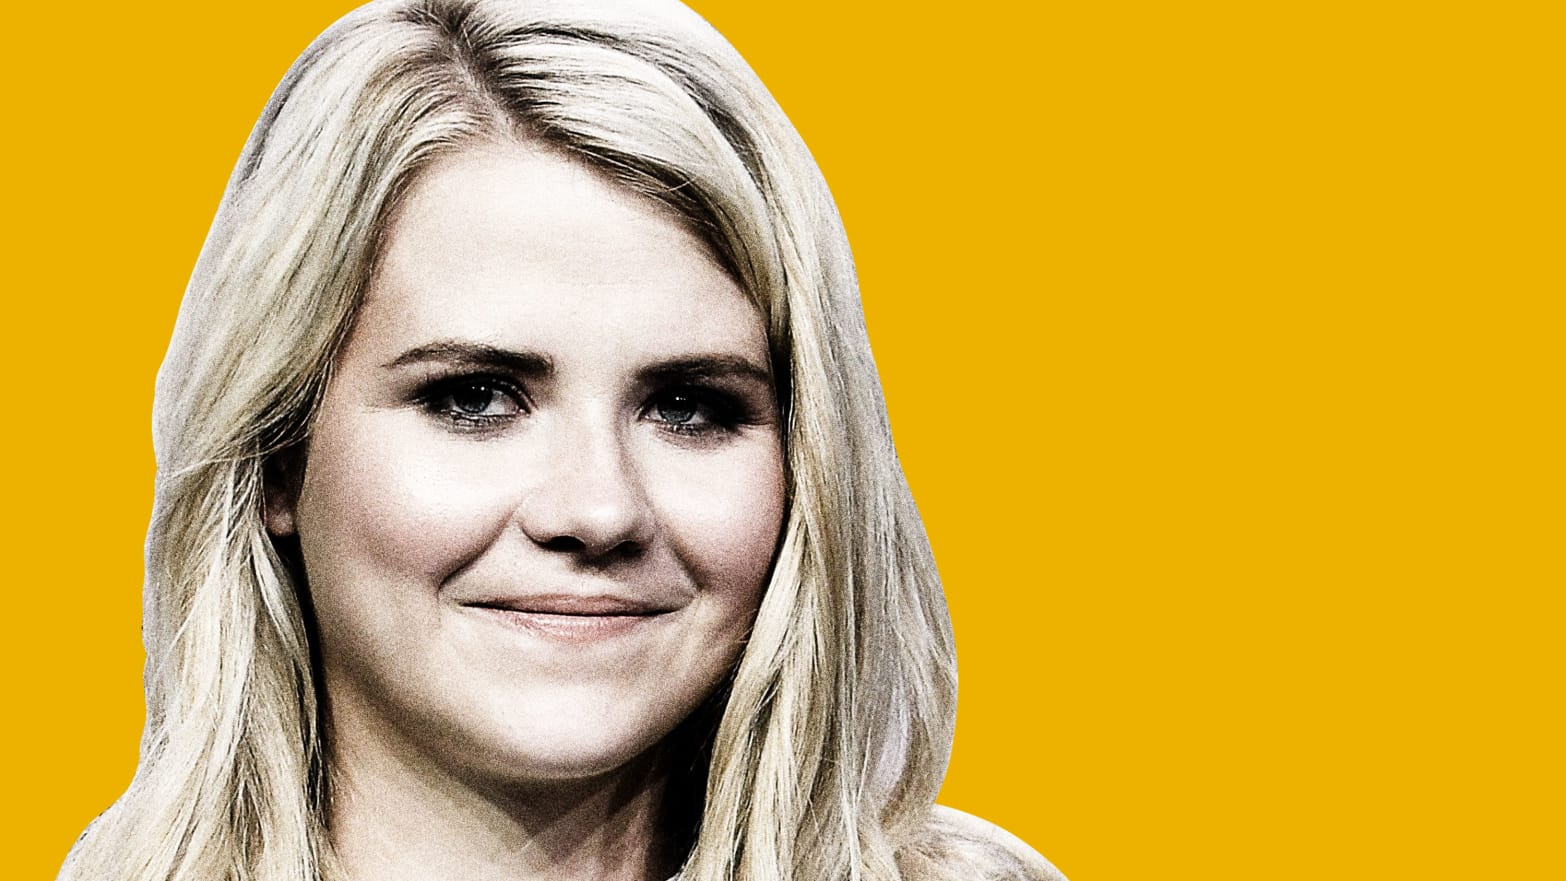 Elizabeth Smart, Jaymee Kloss, and Why Some Kidnapping Survivors Are More Resilient